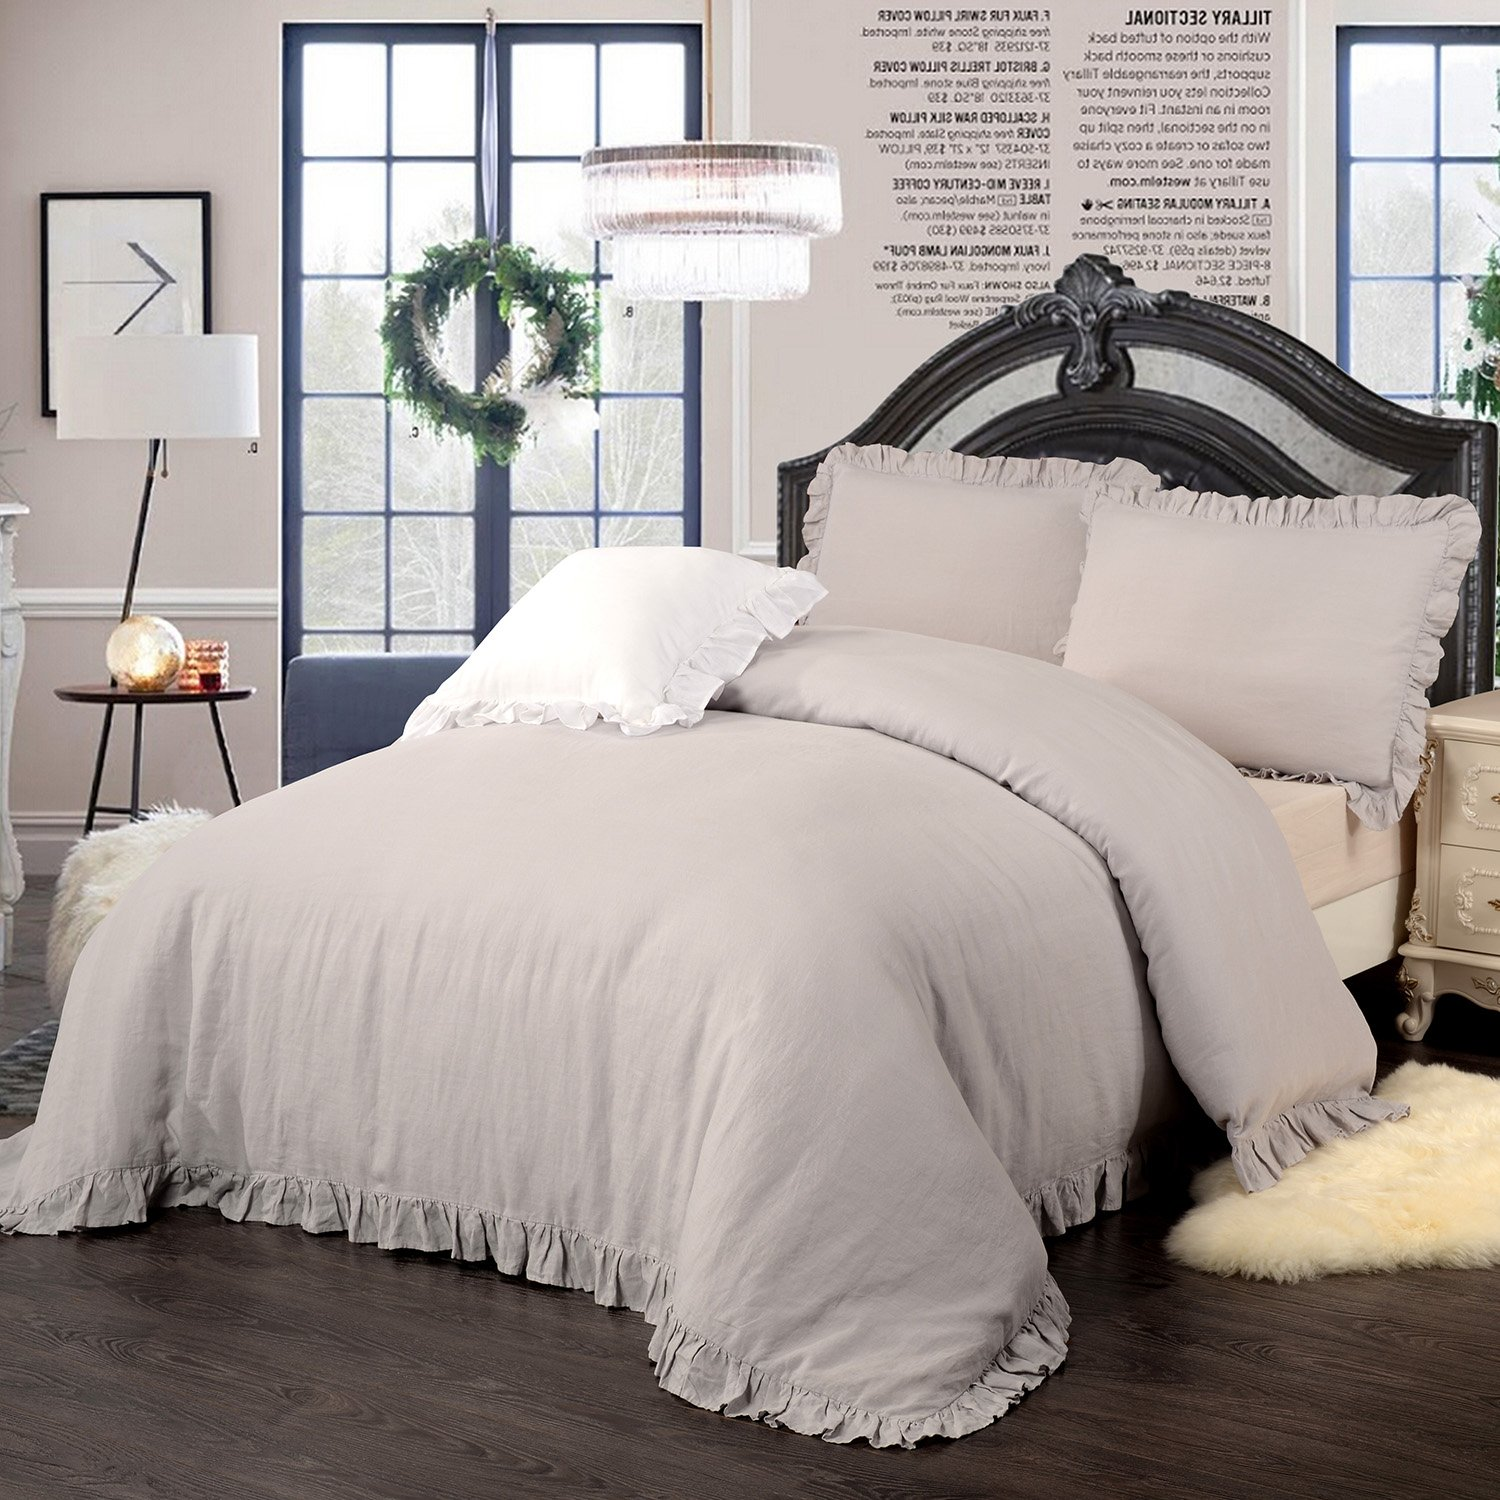 Simple&Opulence 100% Stone Washed Linen Frill Floral Flax Duvet Cover Set (Full, Grey)